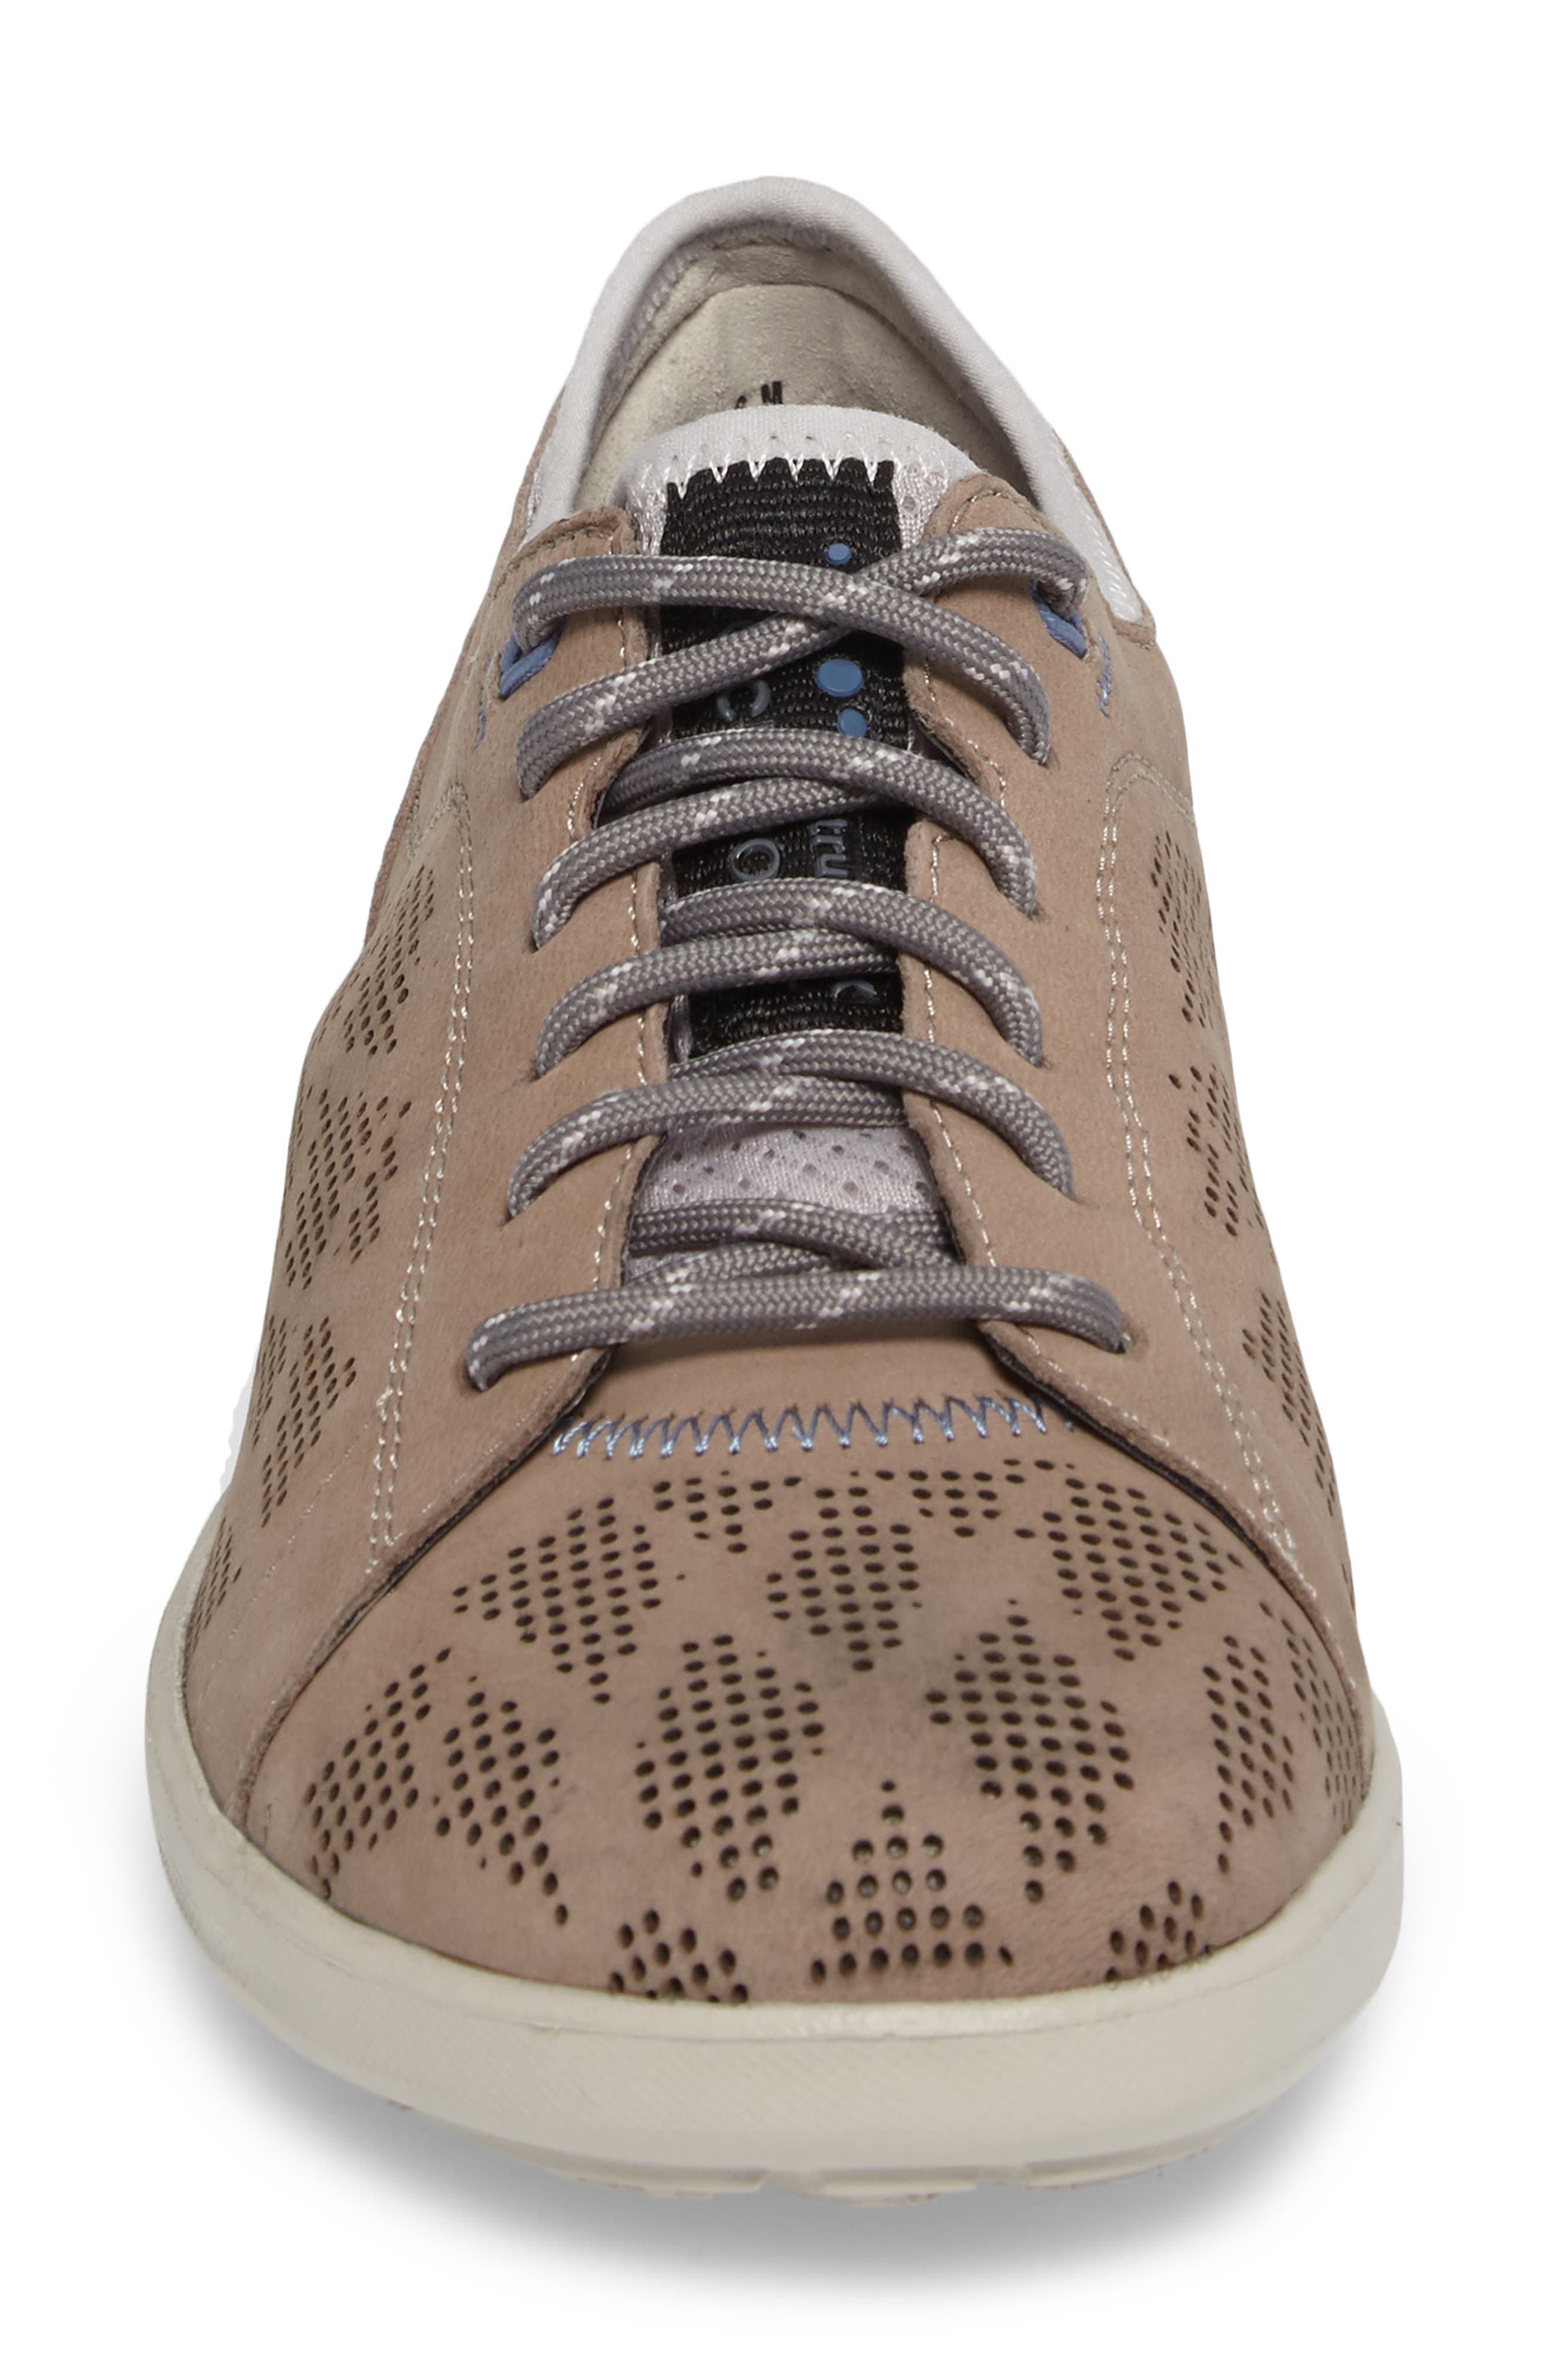 truFLEX Perforated Sneaker,                             Alternate thumbnail 4, color,                             Sand Leather